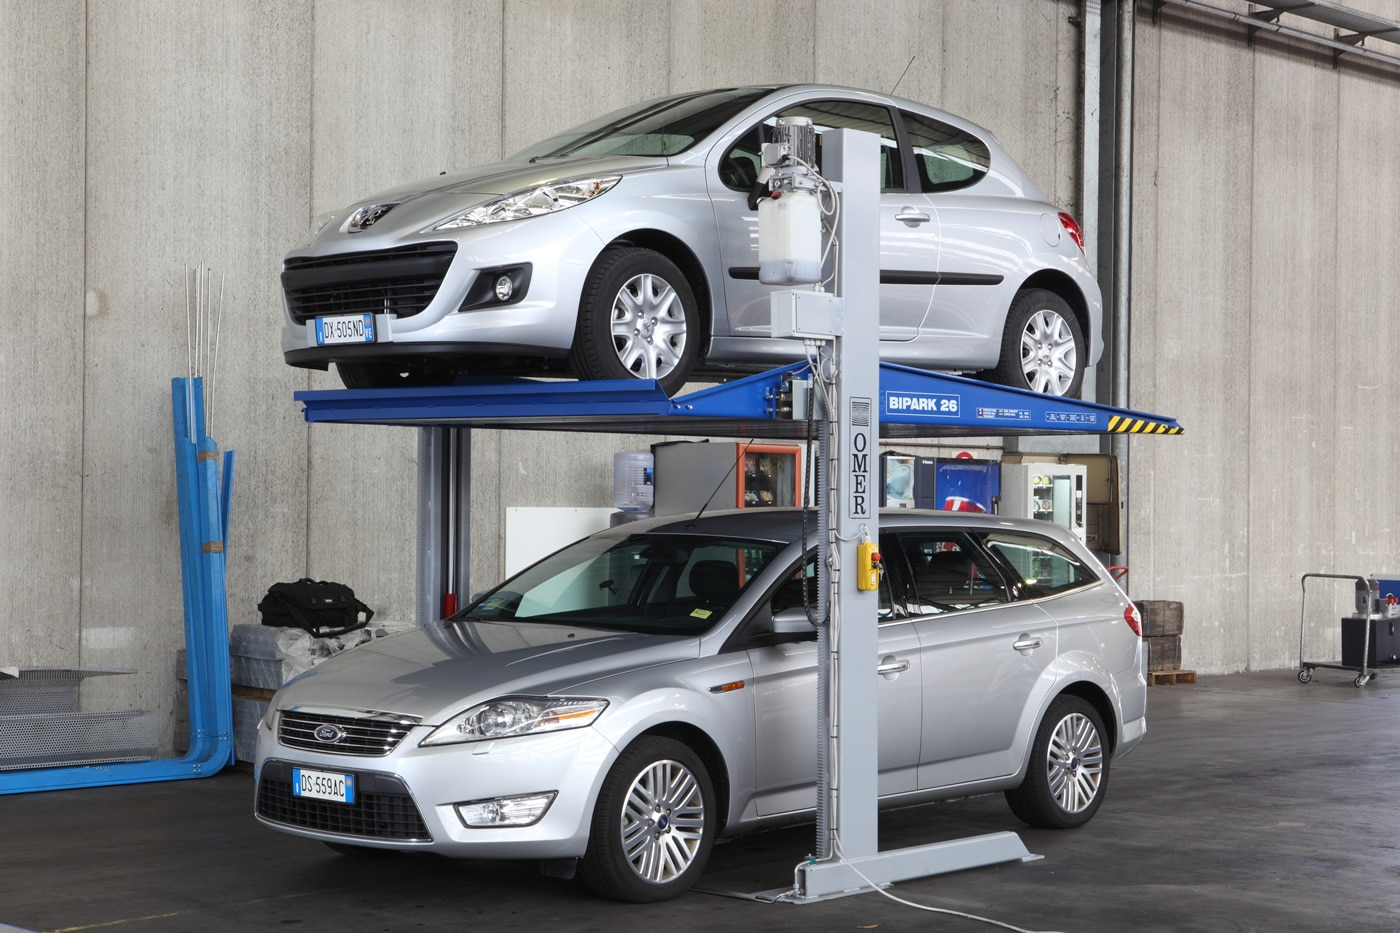 Bipark double stacker car lift by LevantaPark